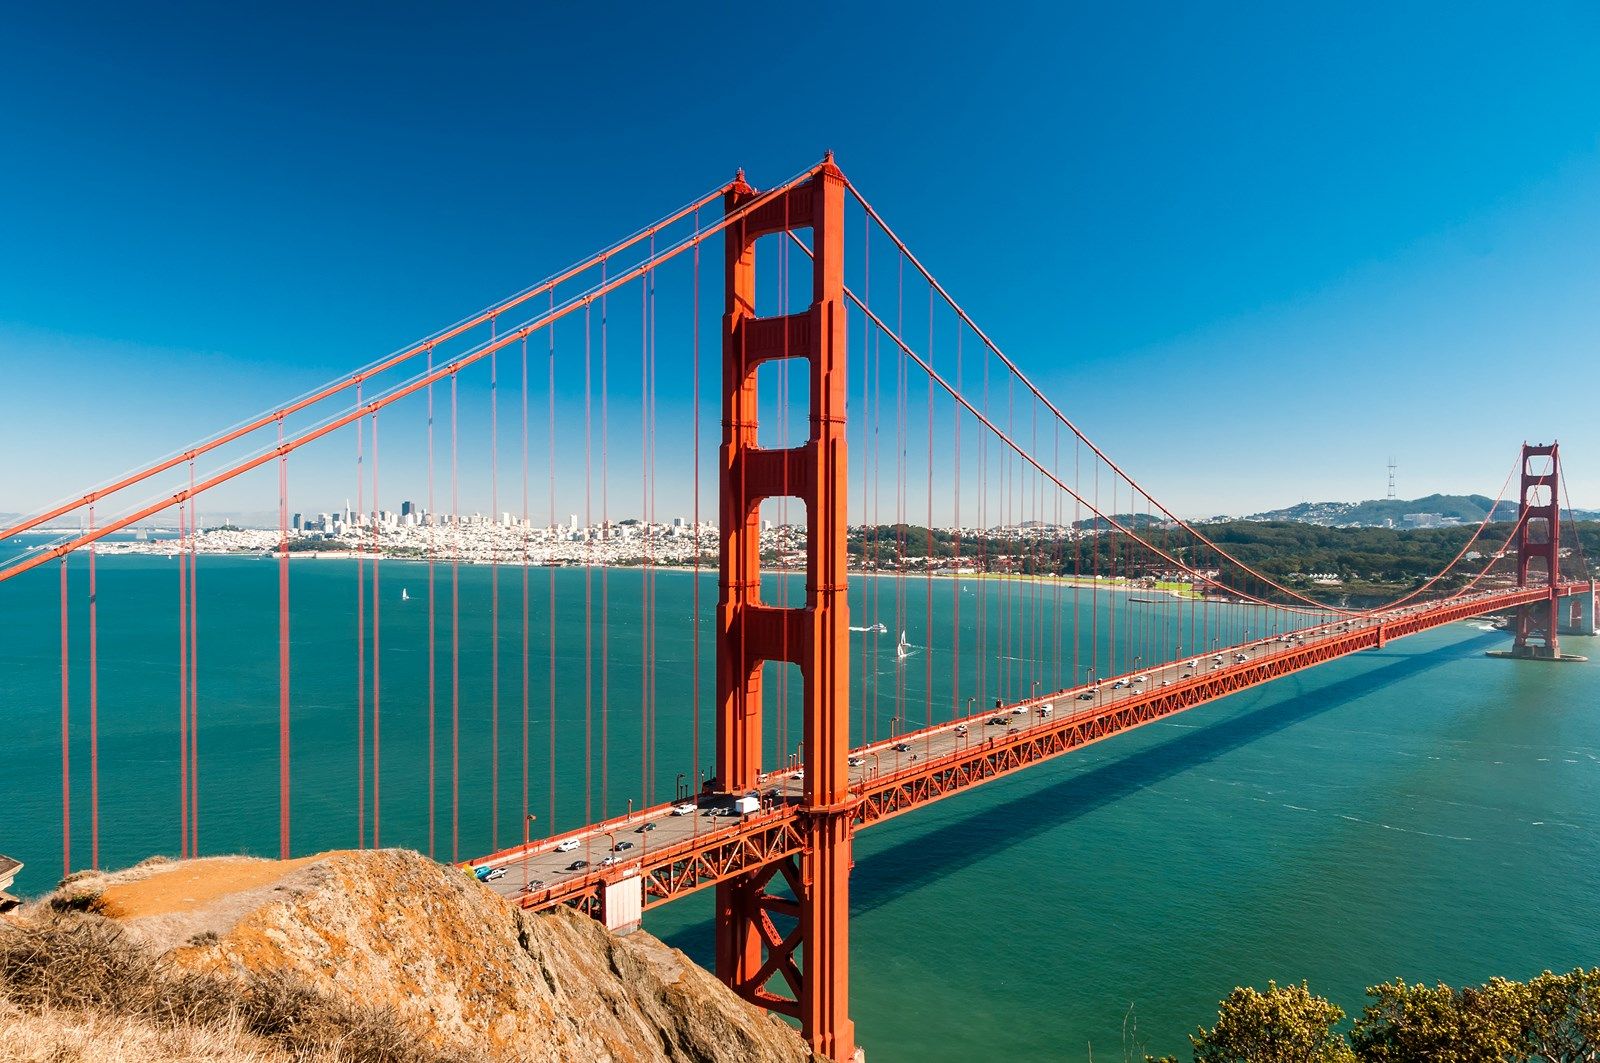 San_Francisco_Panoramic view of Golden Gate Bridge with downtown_174502907.jpg